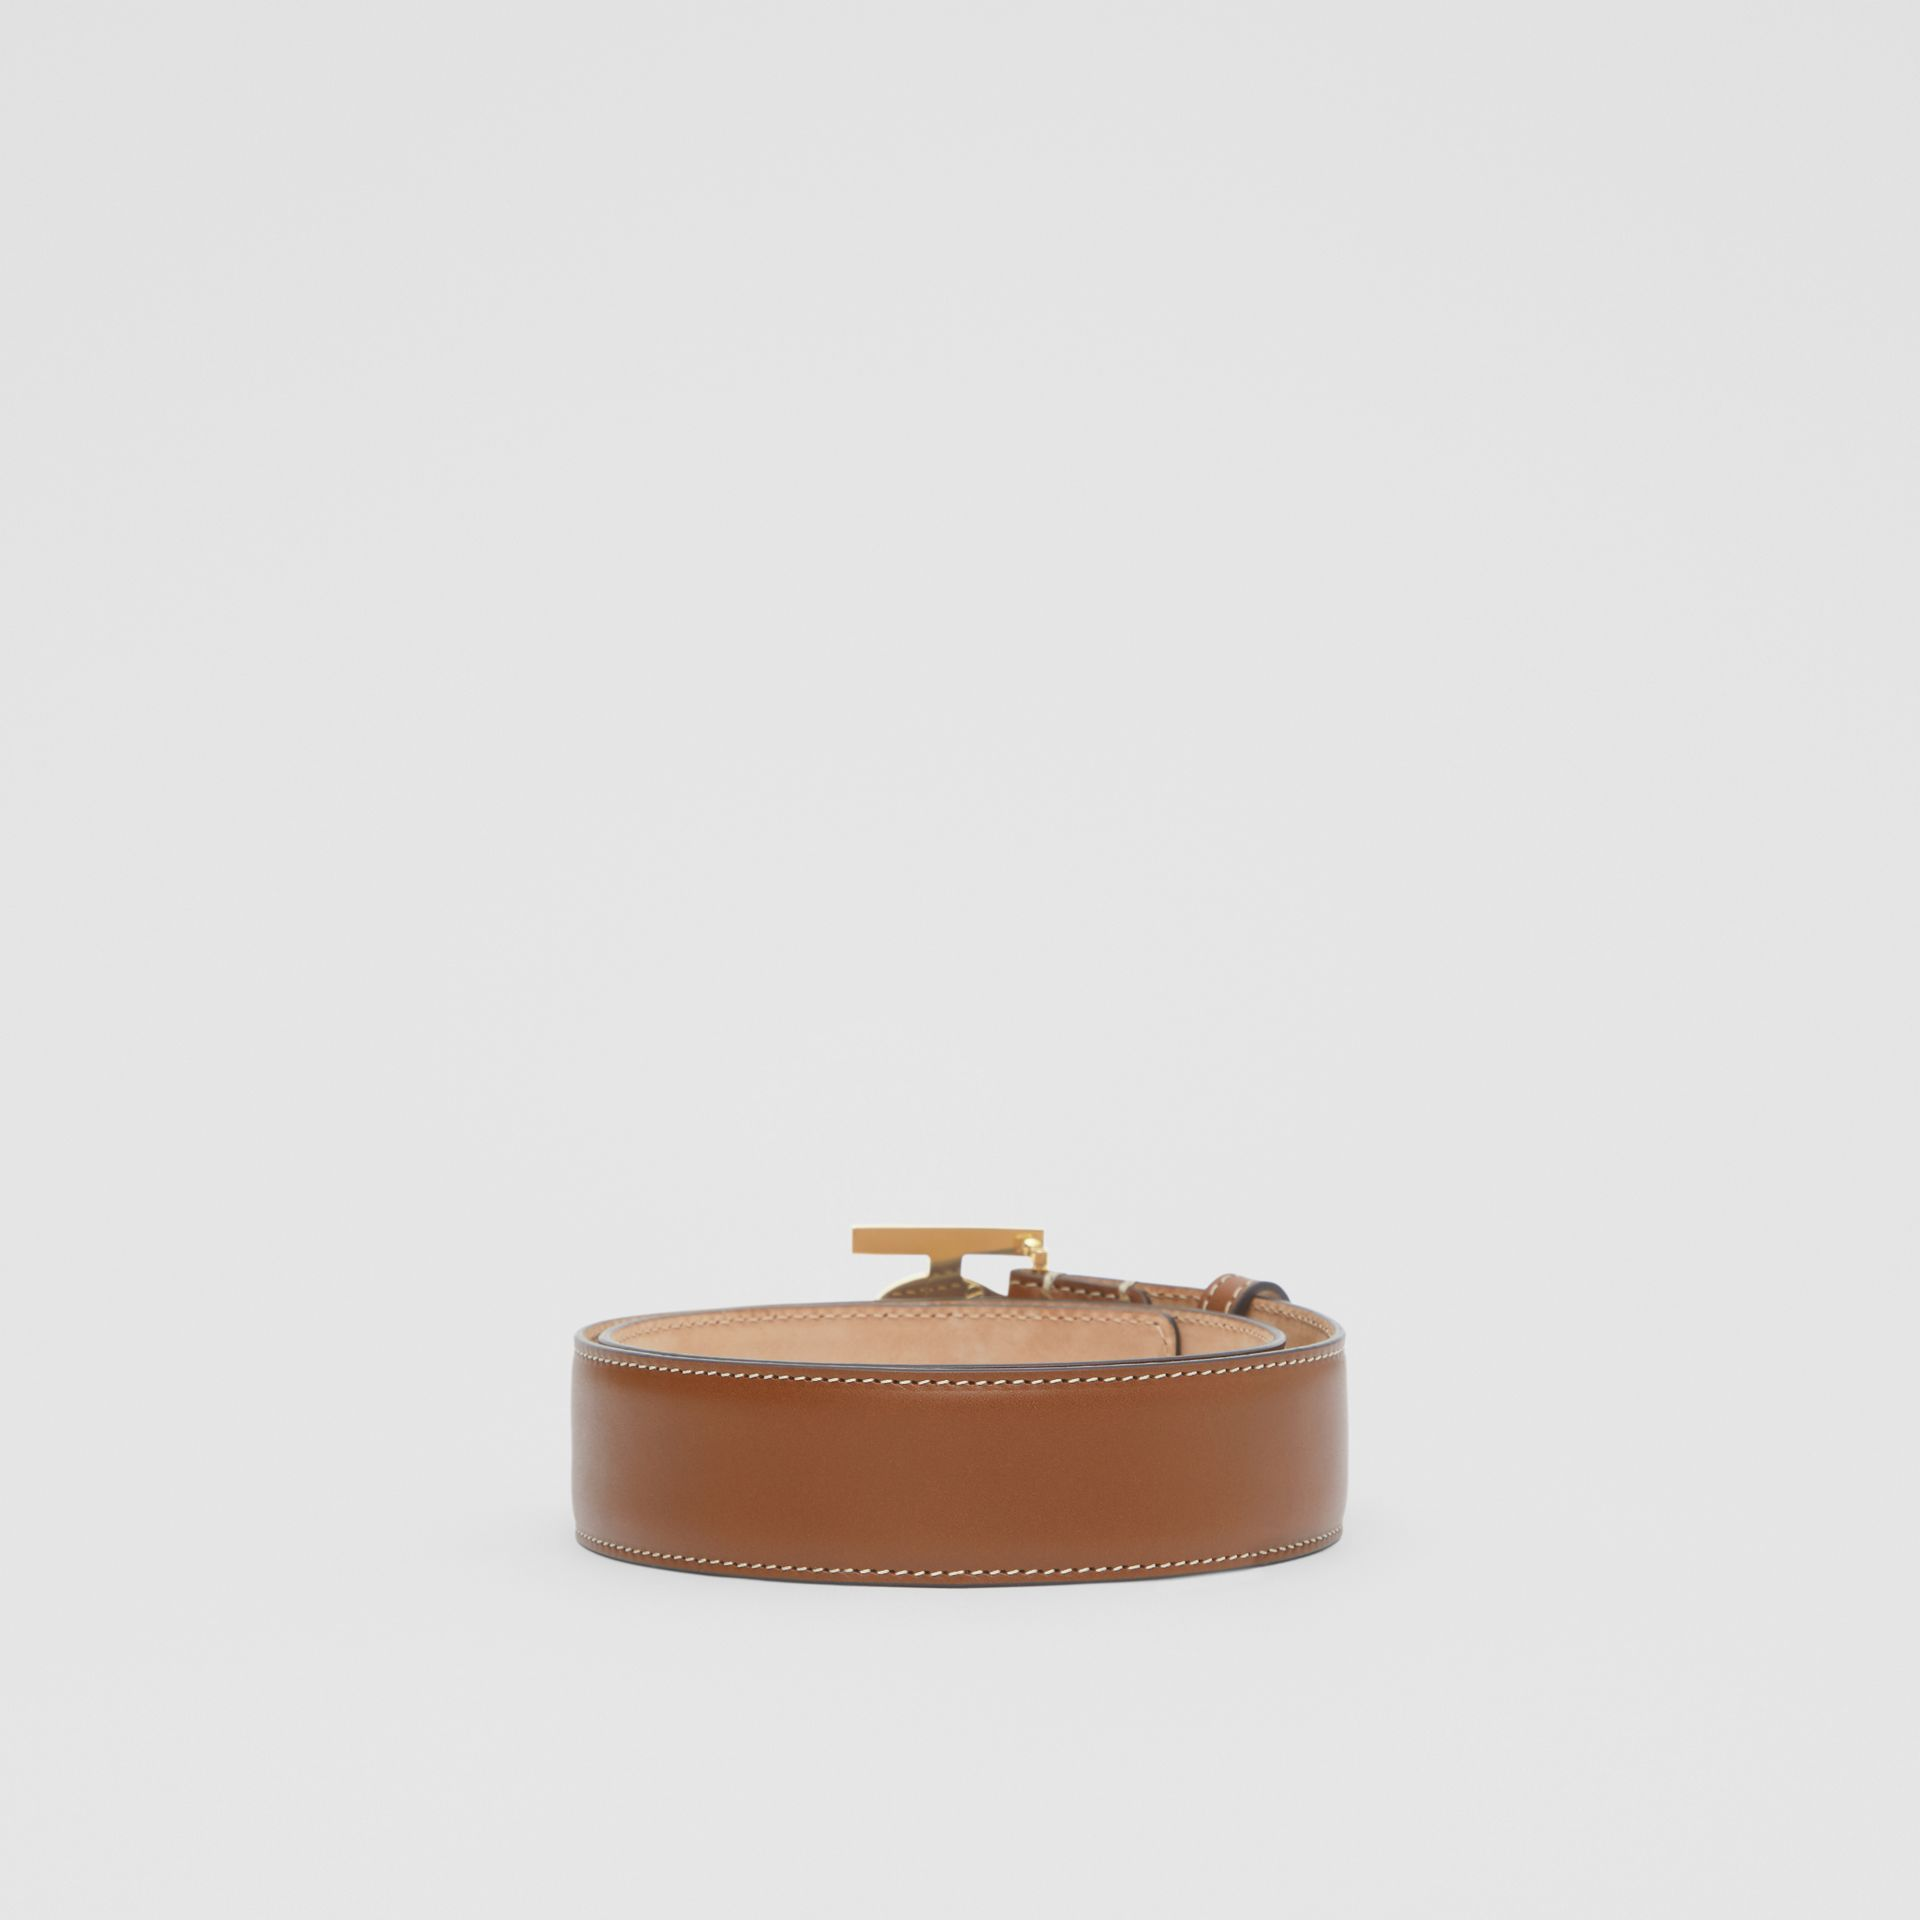 Monogram Motif Leather Belt in Tan - Women | Burberry Canada - gallery image 4